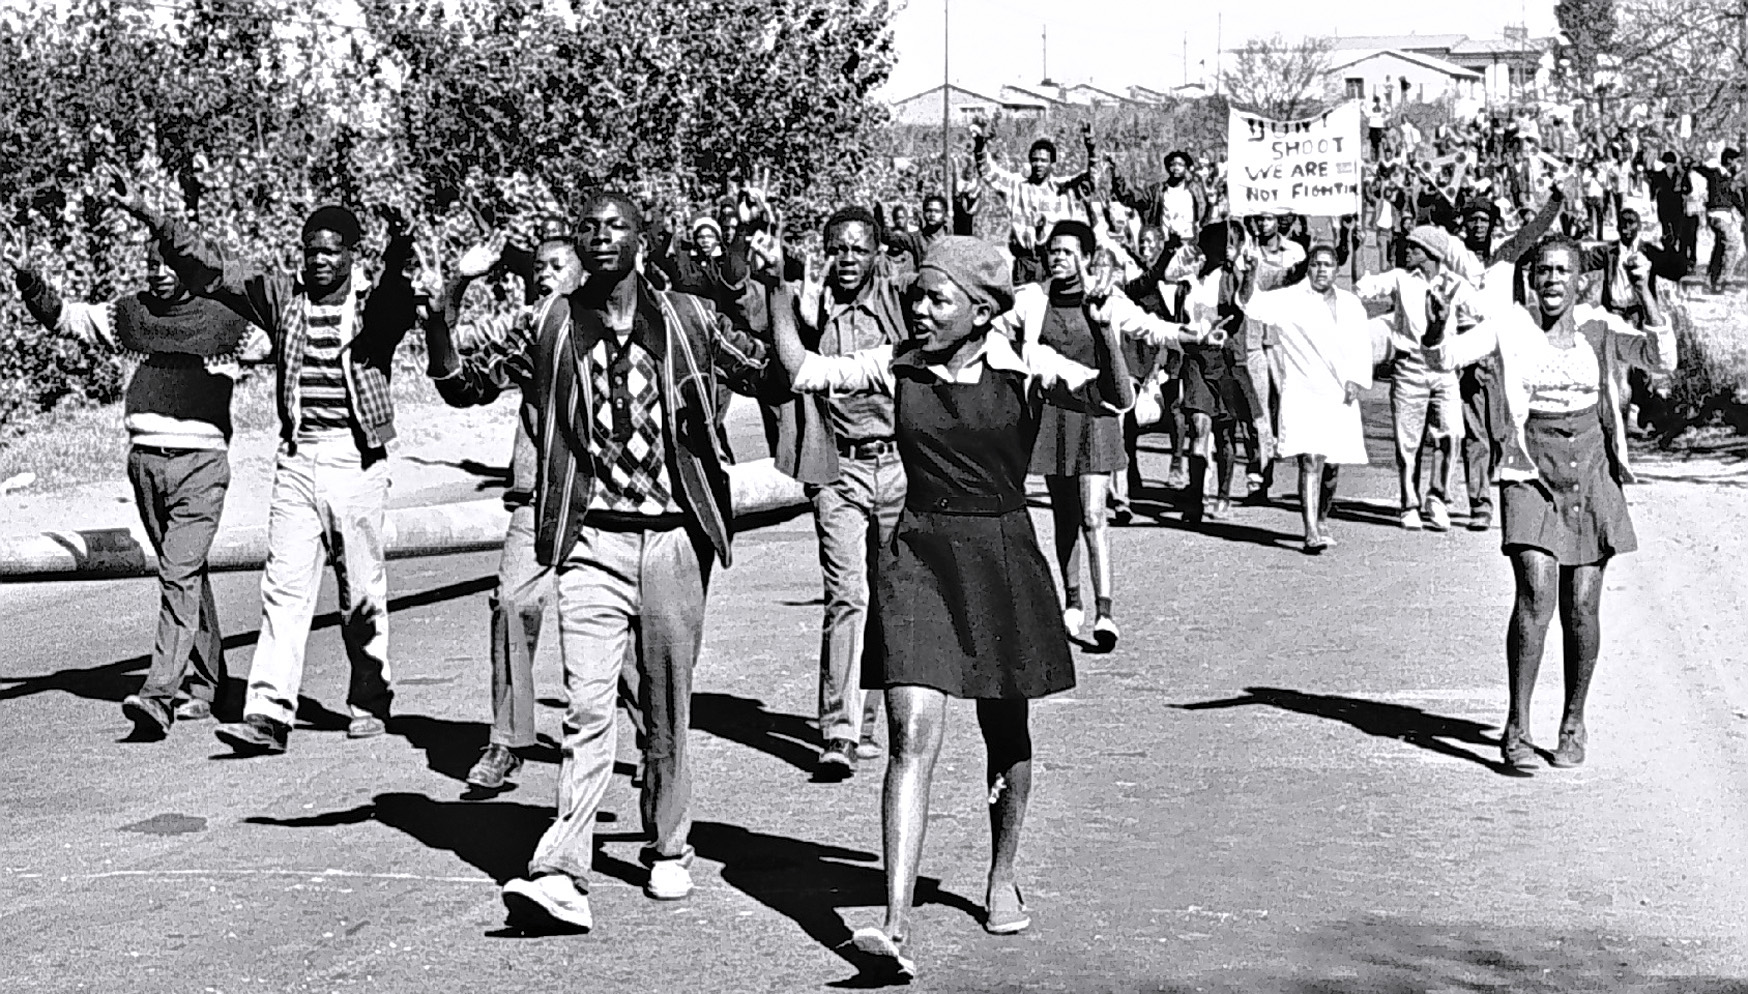 The June 16 Soweto Youth Uprising